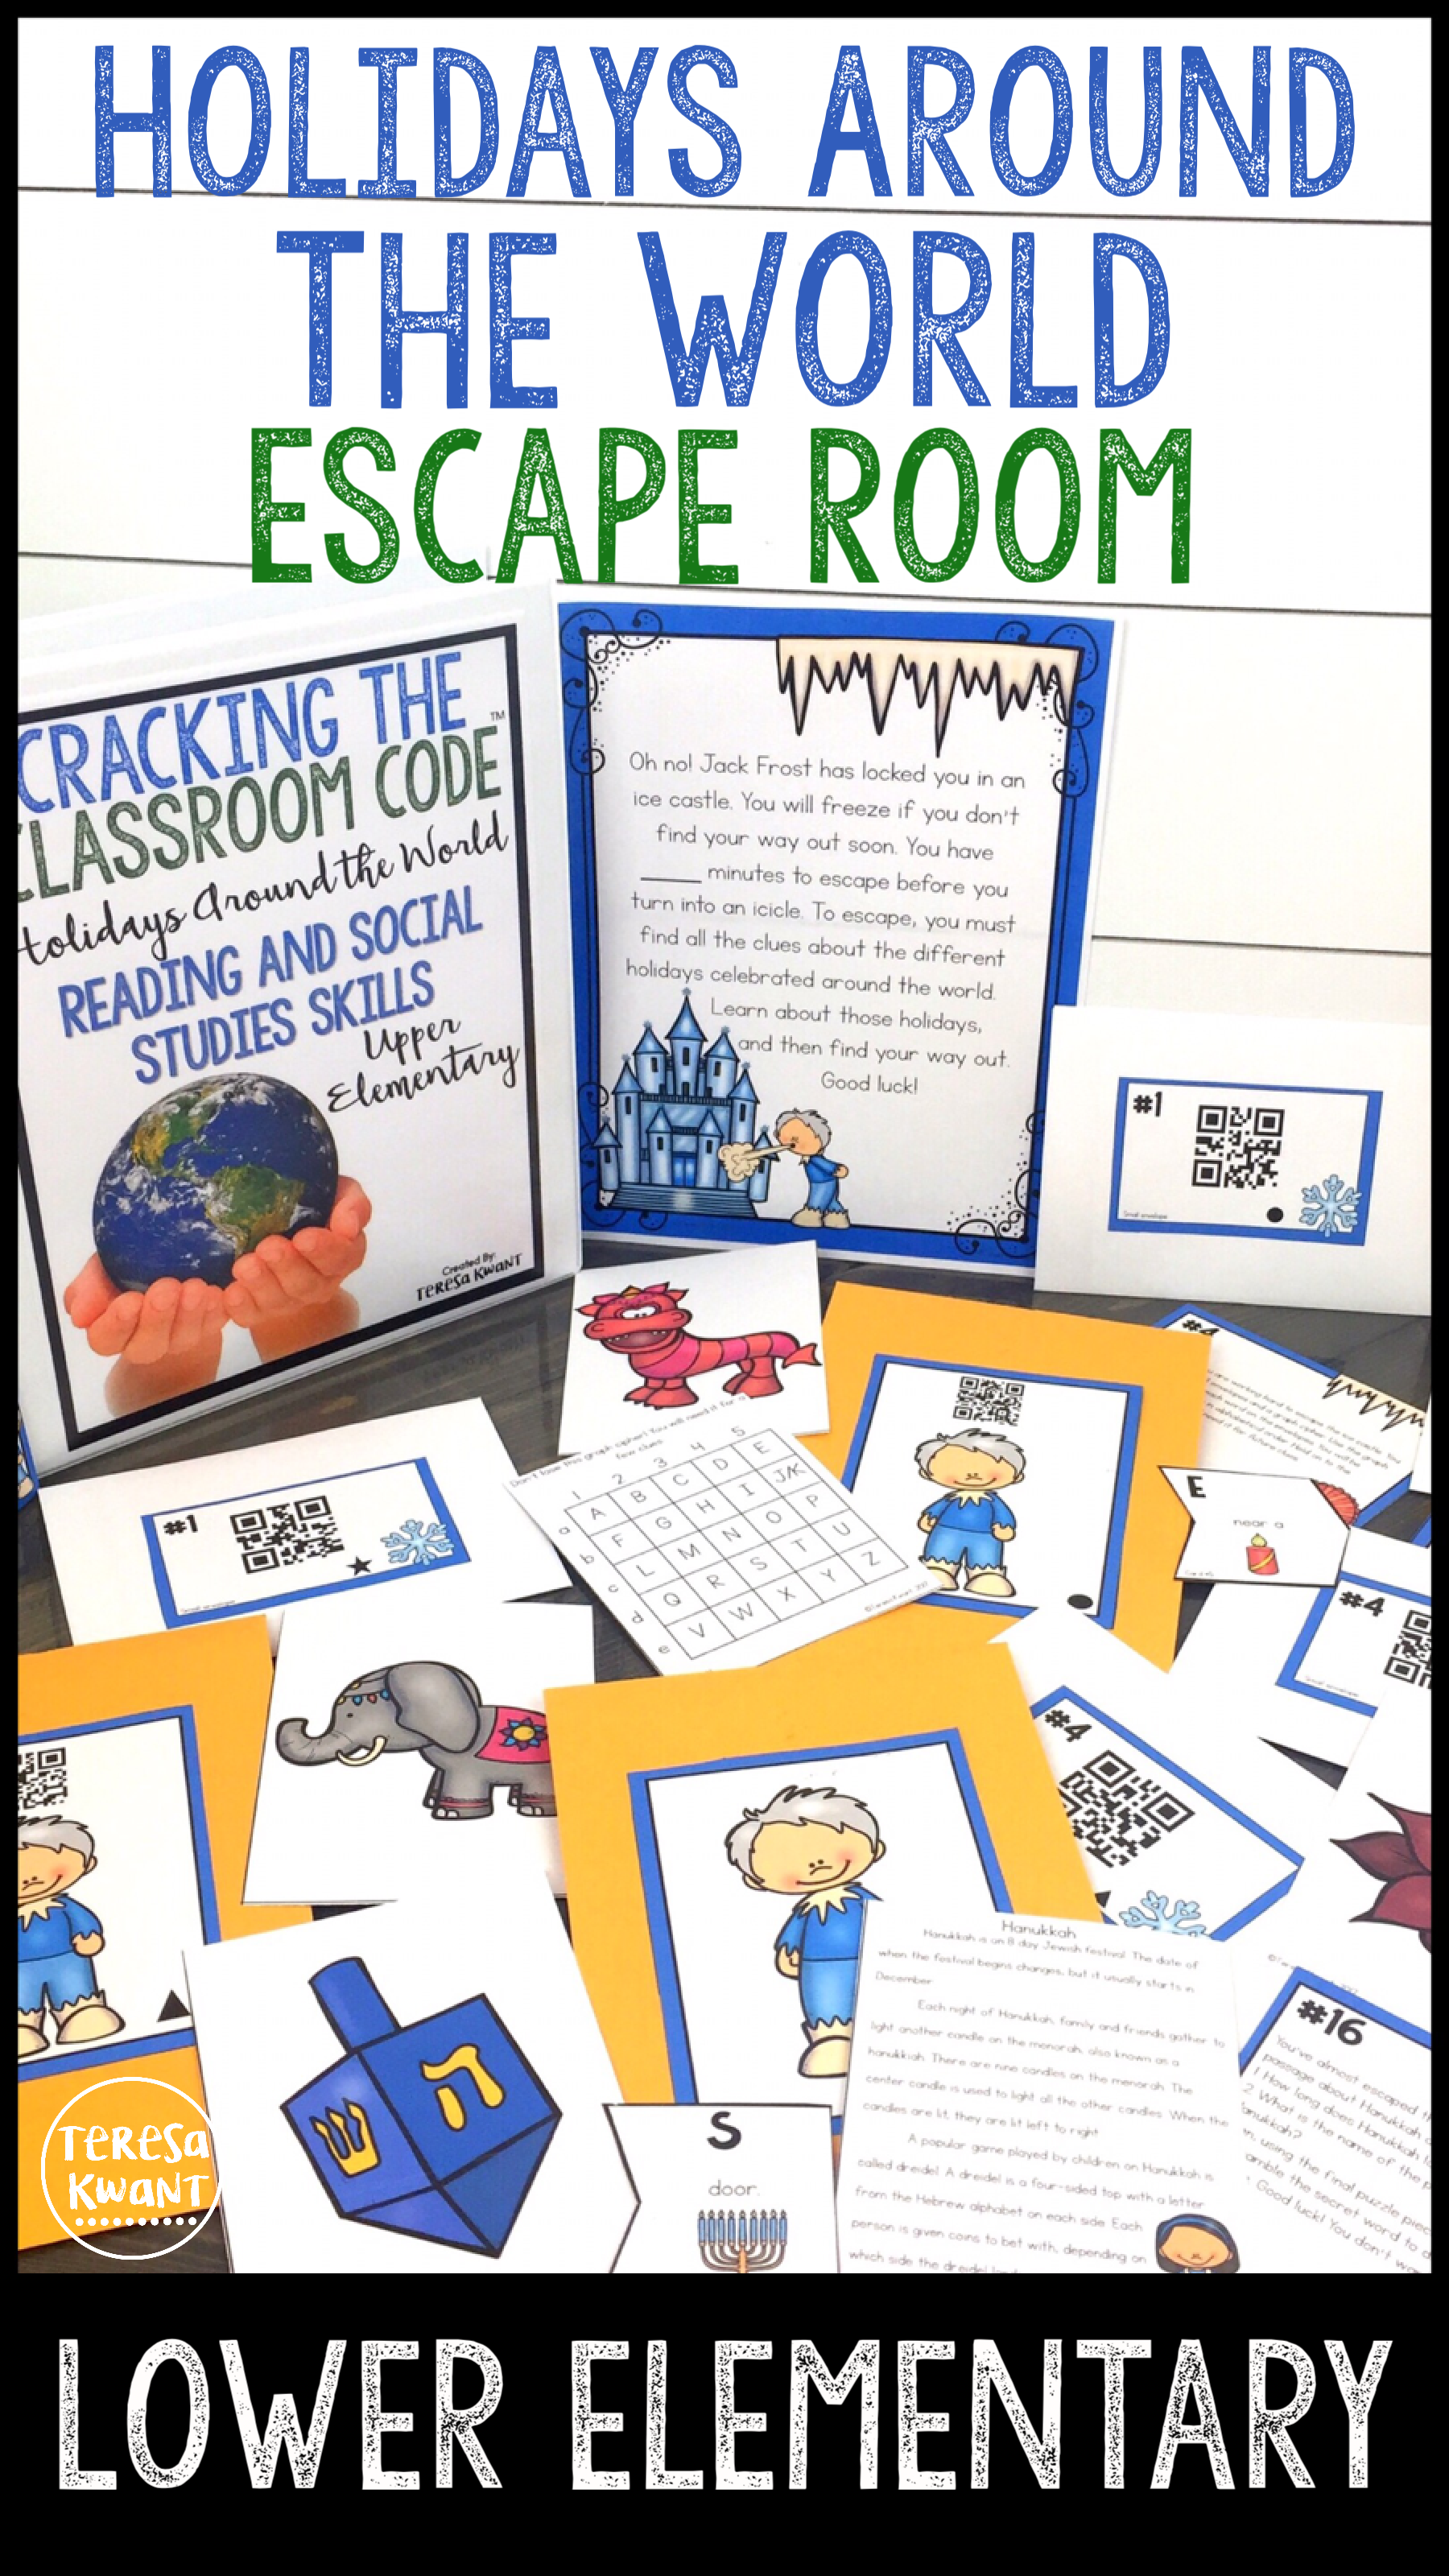 Cracking the Classroom Code™ Holidays Around the World Escape Room ...